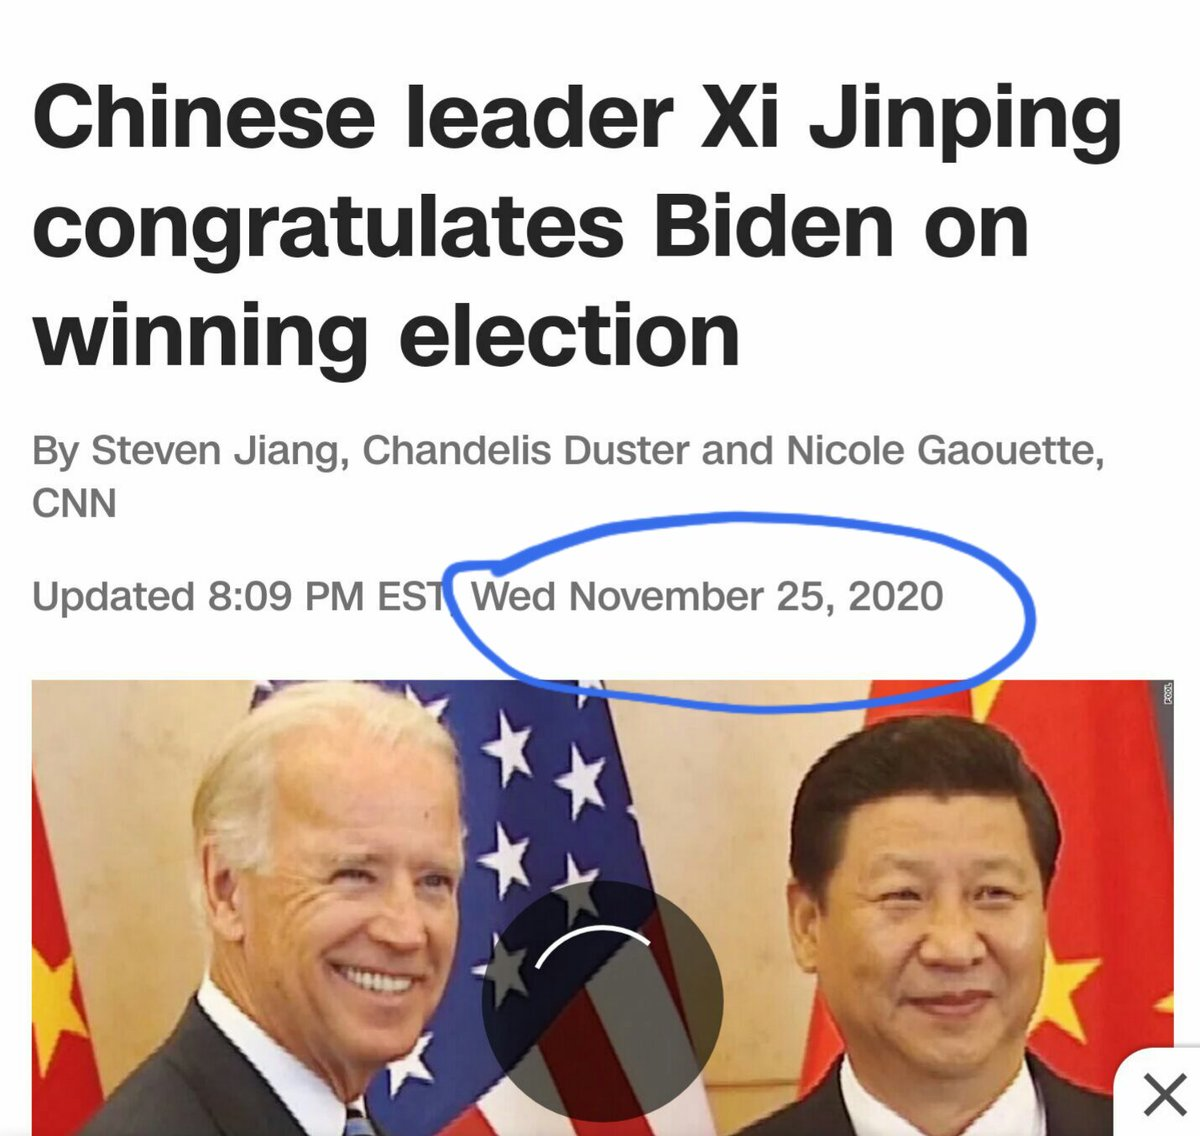 @realDonaldTrump #Xijinping had muted for twenty days but suddenly congratulated Biden right before Powell and Giuliani filed the lawsuits.  Xi is warning Biden not to concede.